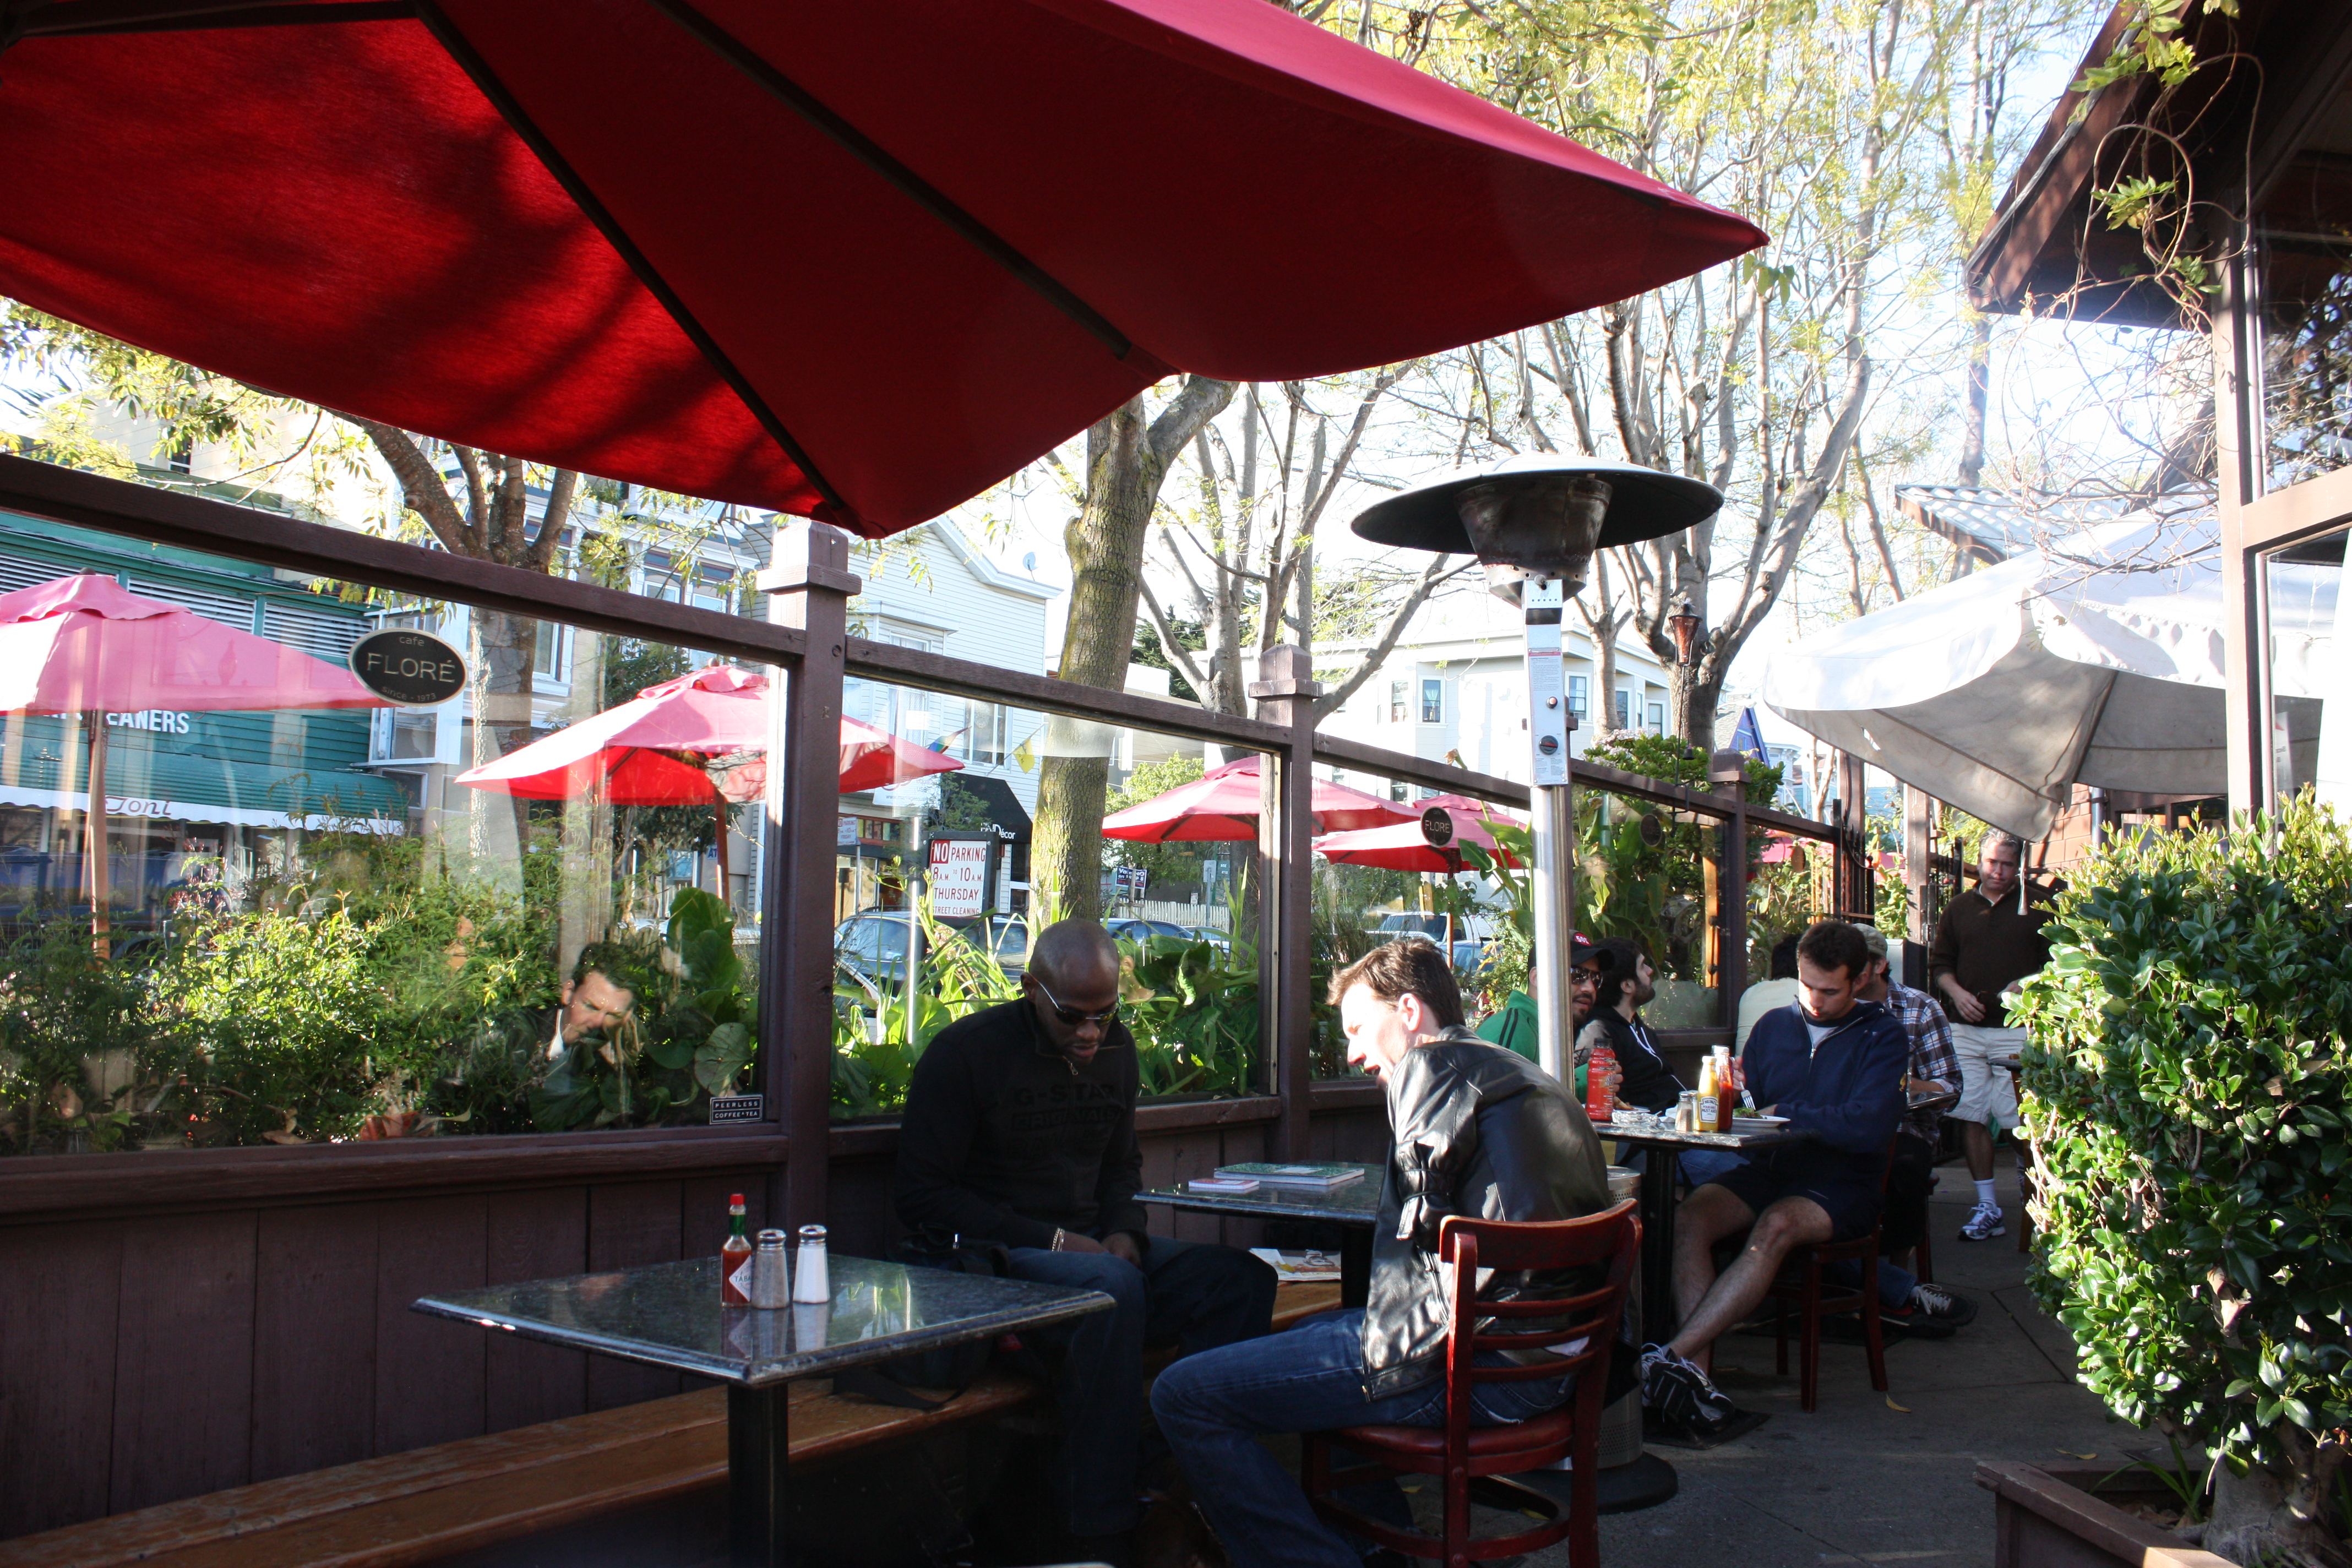 File:Cafe Flore Heated Outdoor Patio 2009